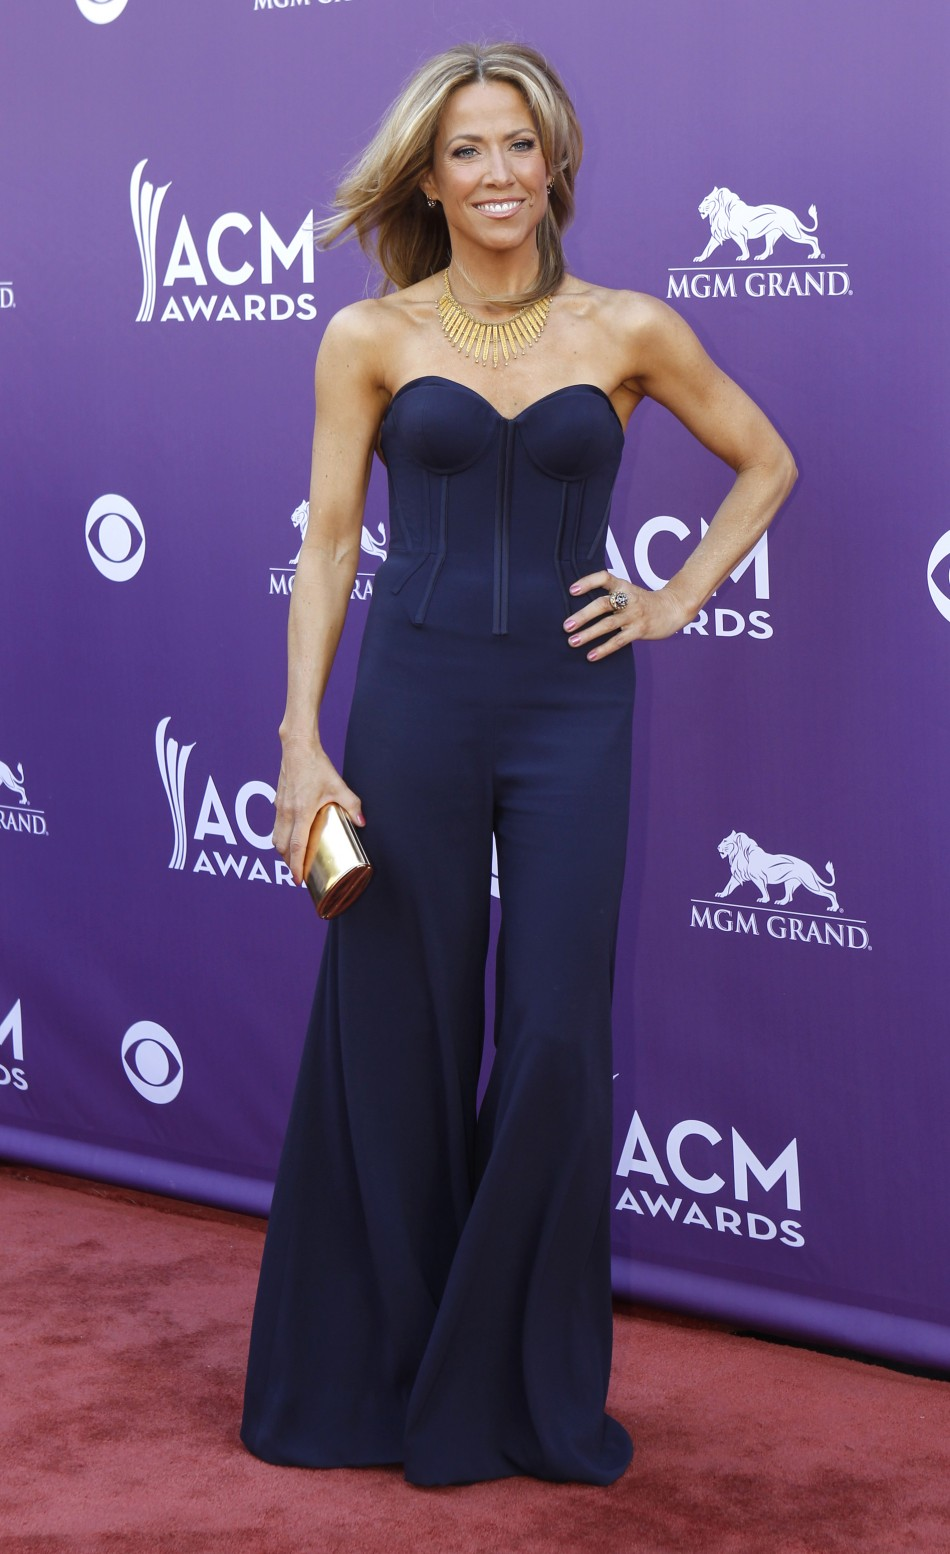 Singer Sheryl Crow poses as she arrives at the 48th ACM Awards in Las Vegas, April 7, 2013.